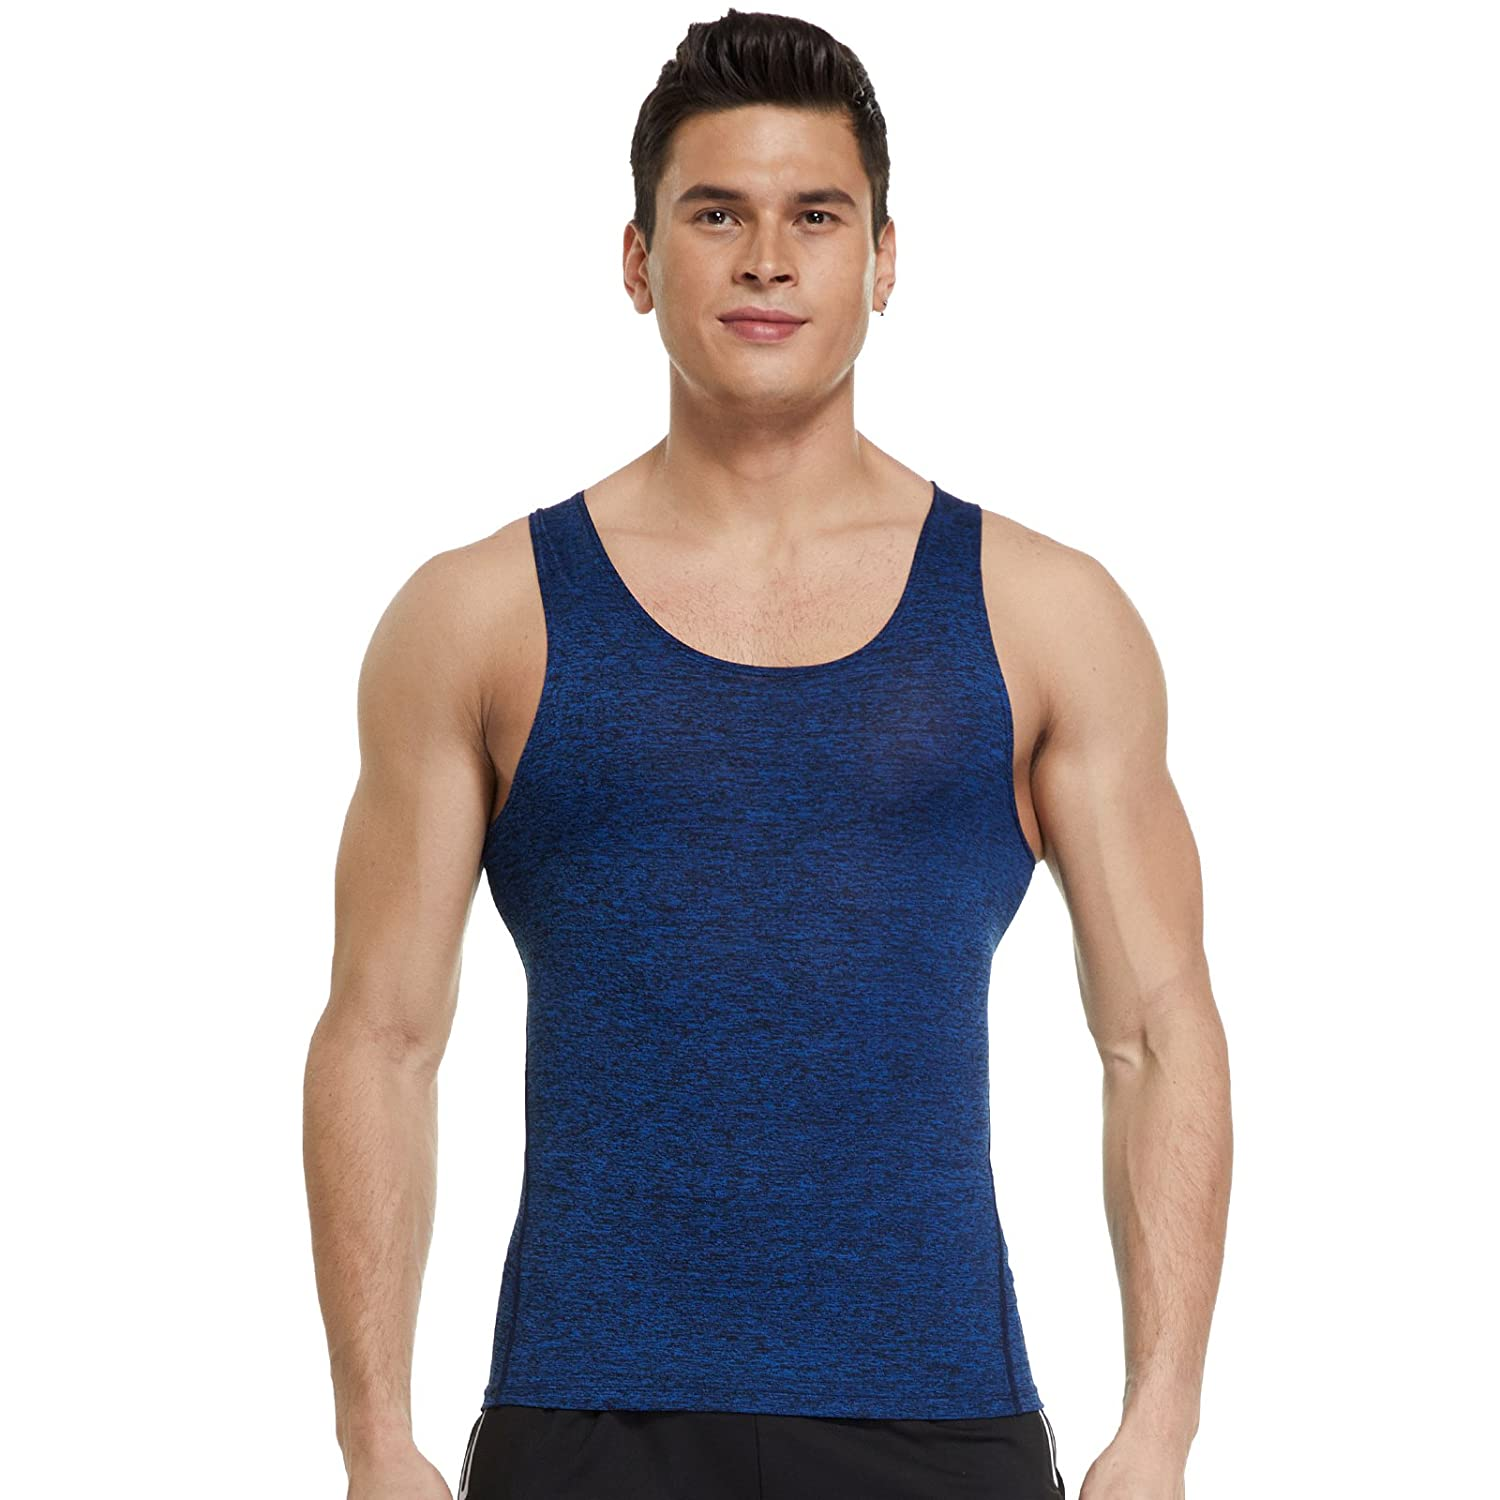 Joyshaper Compression Vest Top Men Quick Dry Fit Sweat Tank Shirt T-Shirt Tee Activewear Sleeveless Sports Workout Athletic Fitness Running